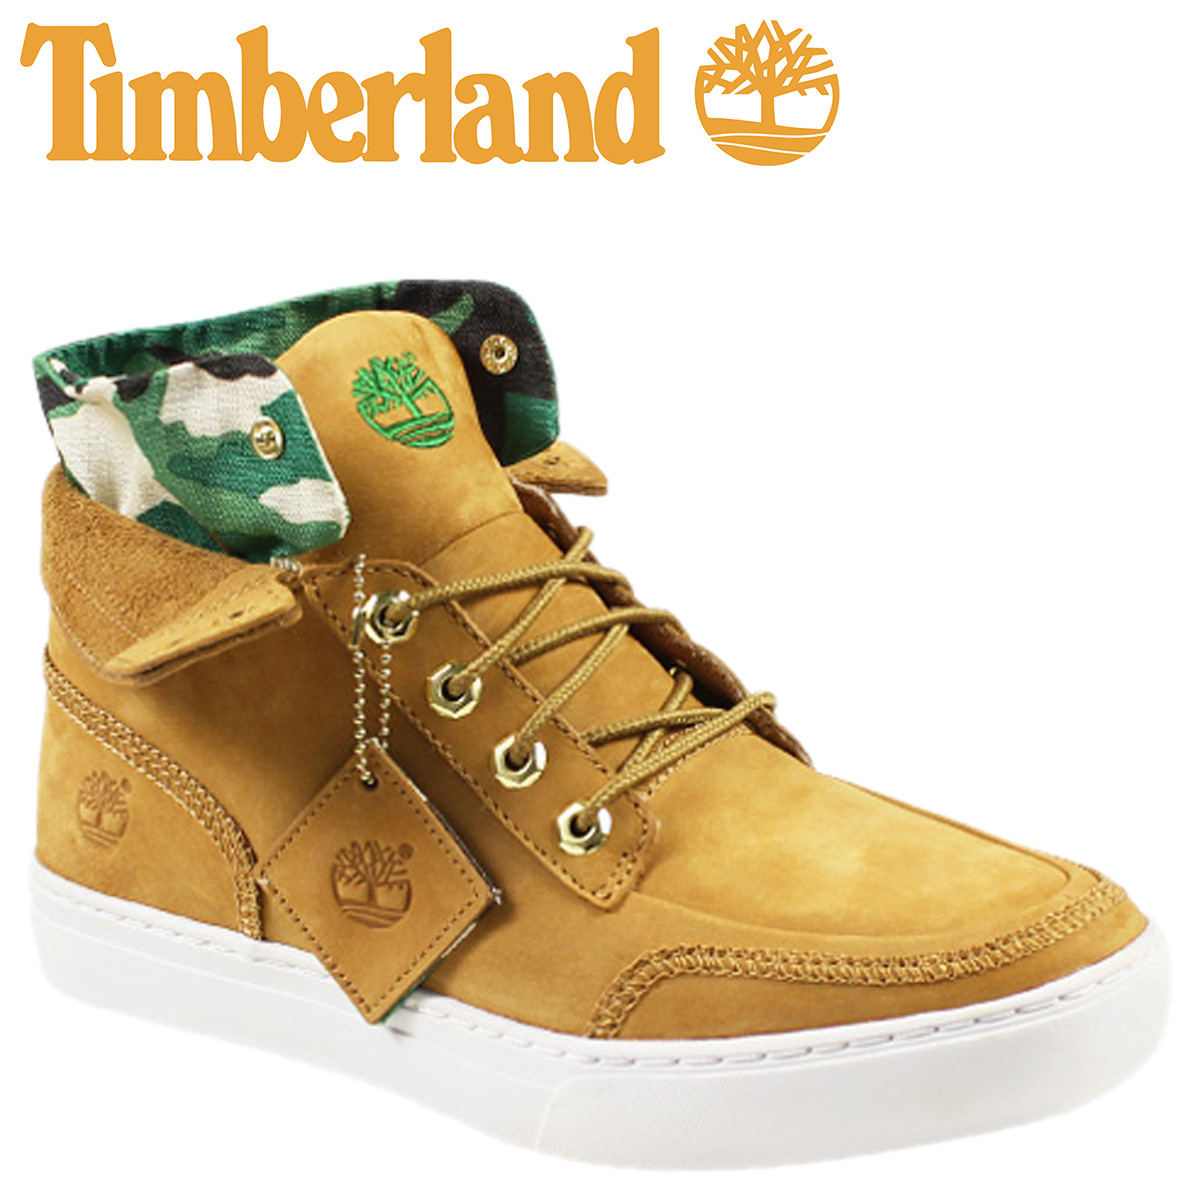 Timberland Timberland Earthkeepers merge roll top boots EK MERGE ROLL-TOP nubuck 6134A wheat × Camo [3 / 24 new in stock] [regular]